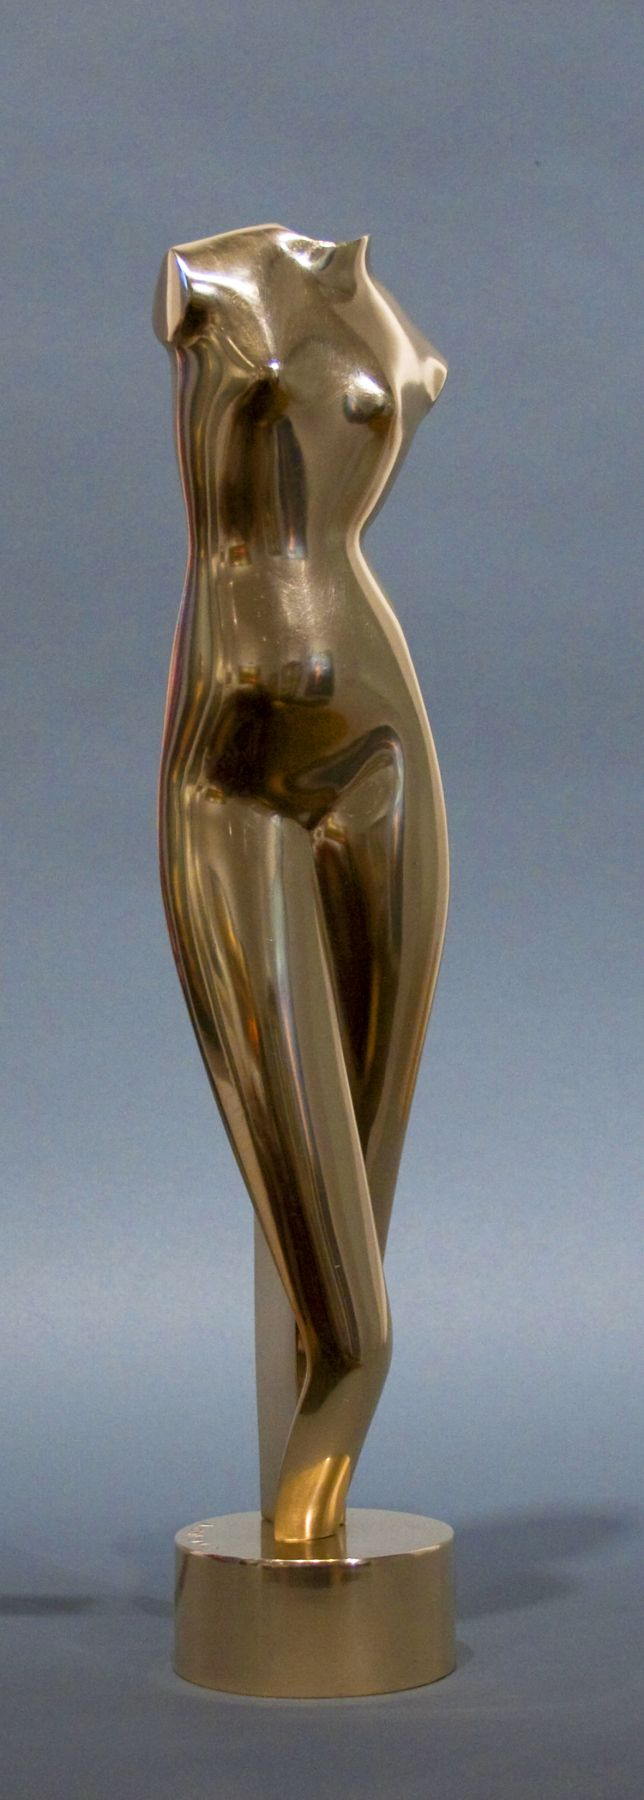 Alexander Archipenko, White Torso, 1916, cast later, polished bronze, 18 1/2 x 3 3/4 x 2 3/4 inches